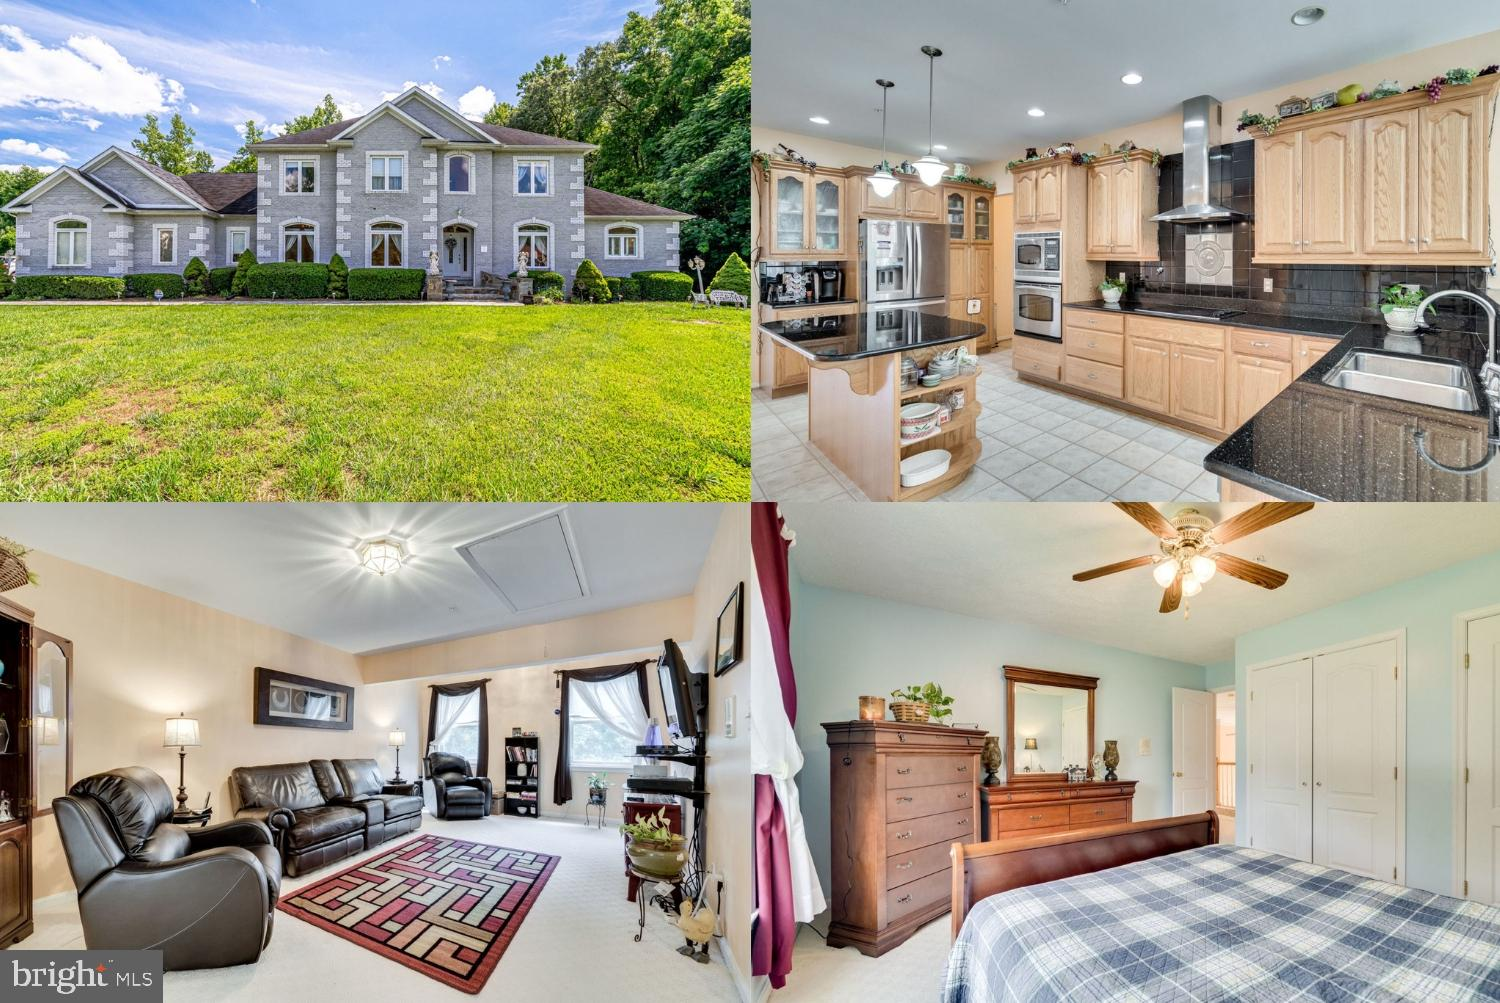 14109 KENDALWOOD DRIVE, UPPER MARLBORO, MD 20772